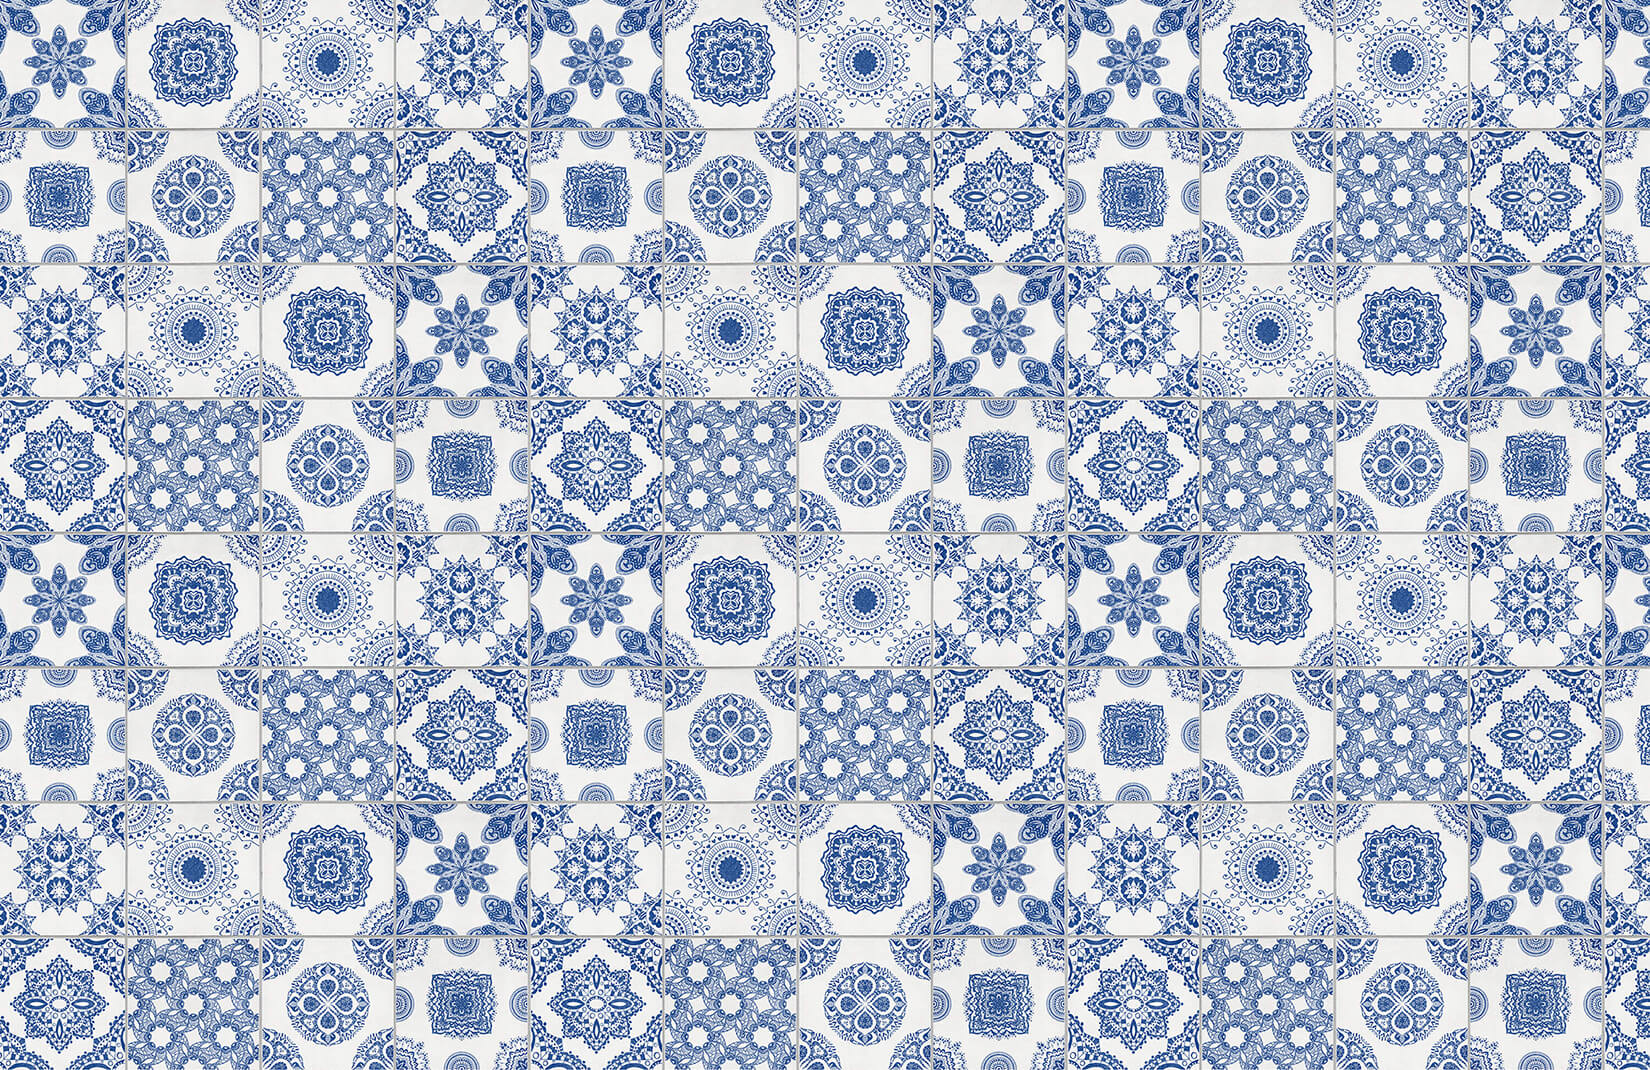 3d Wallpaper Murals India Blue And White Tile Wallpaper Muralswallpaper